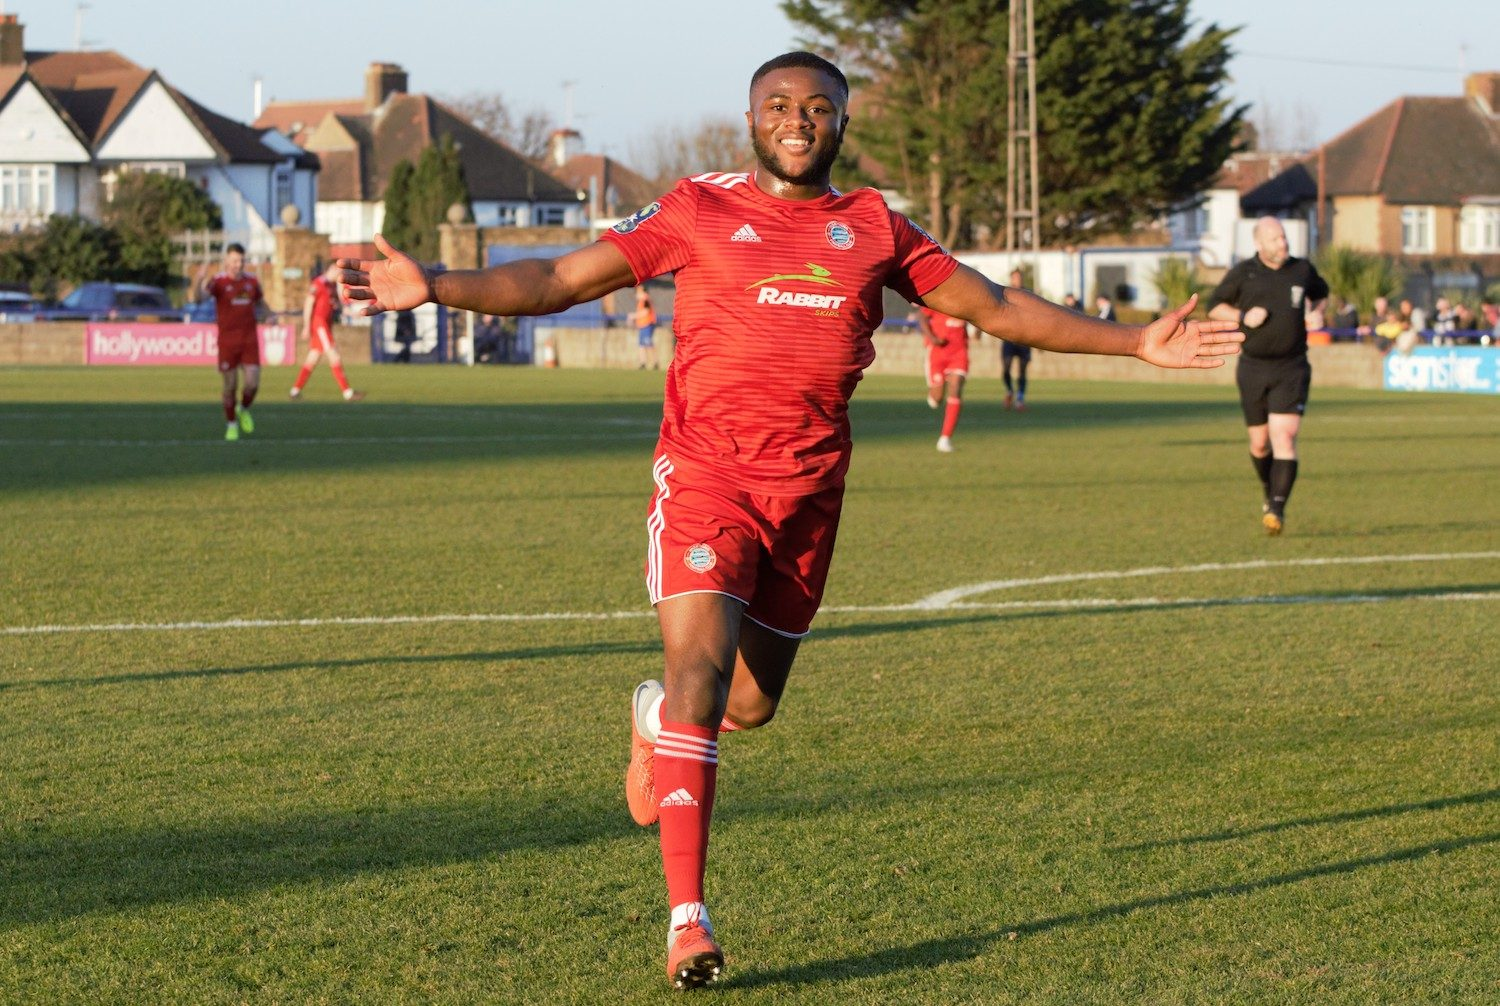 HIGHLIGHTS: Wingate & Finchley 1-2 Worthing [A] – League